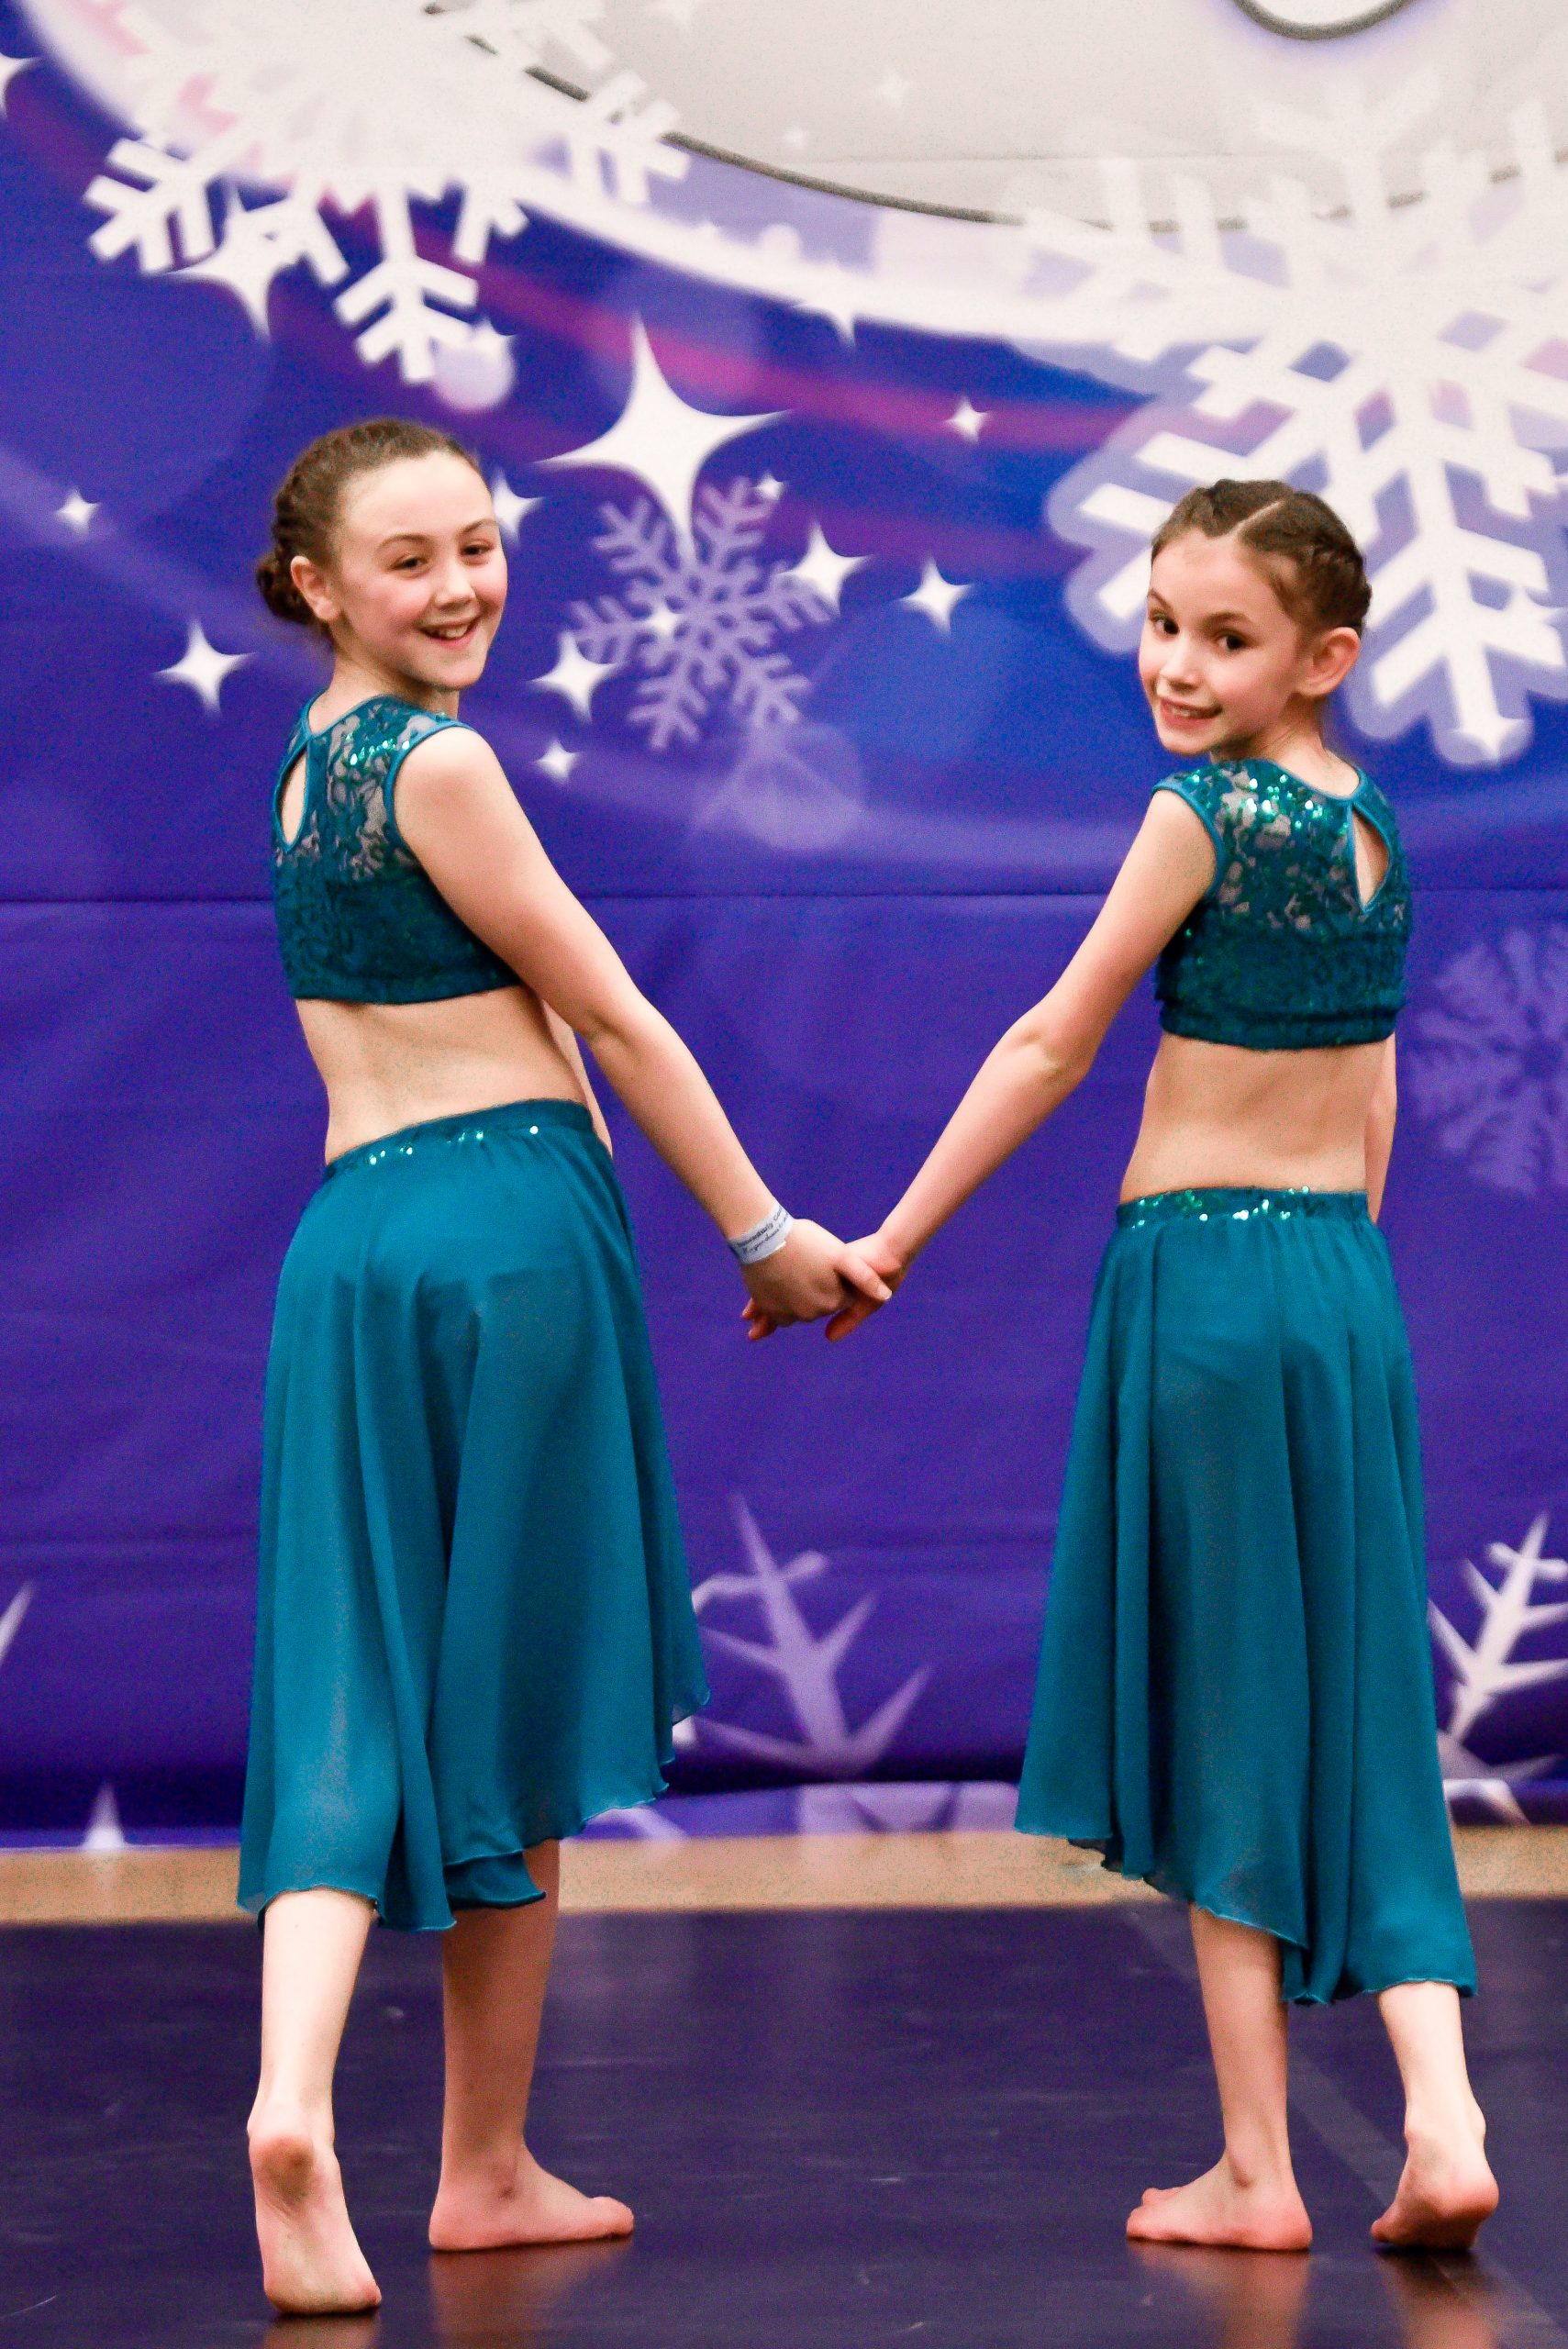 Dancers compete on a dance floor at an ICE Extravaganza Cheer and Dance event